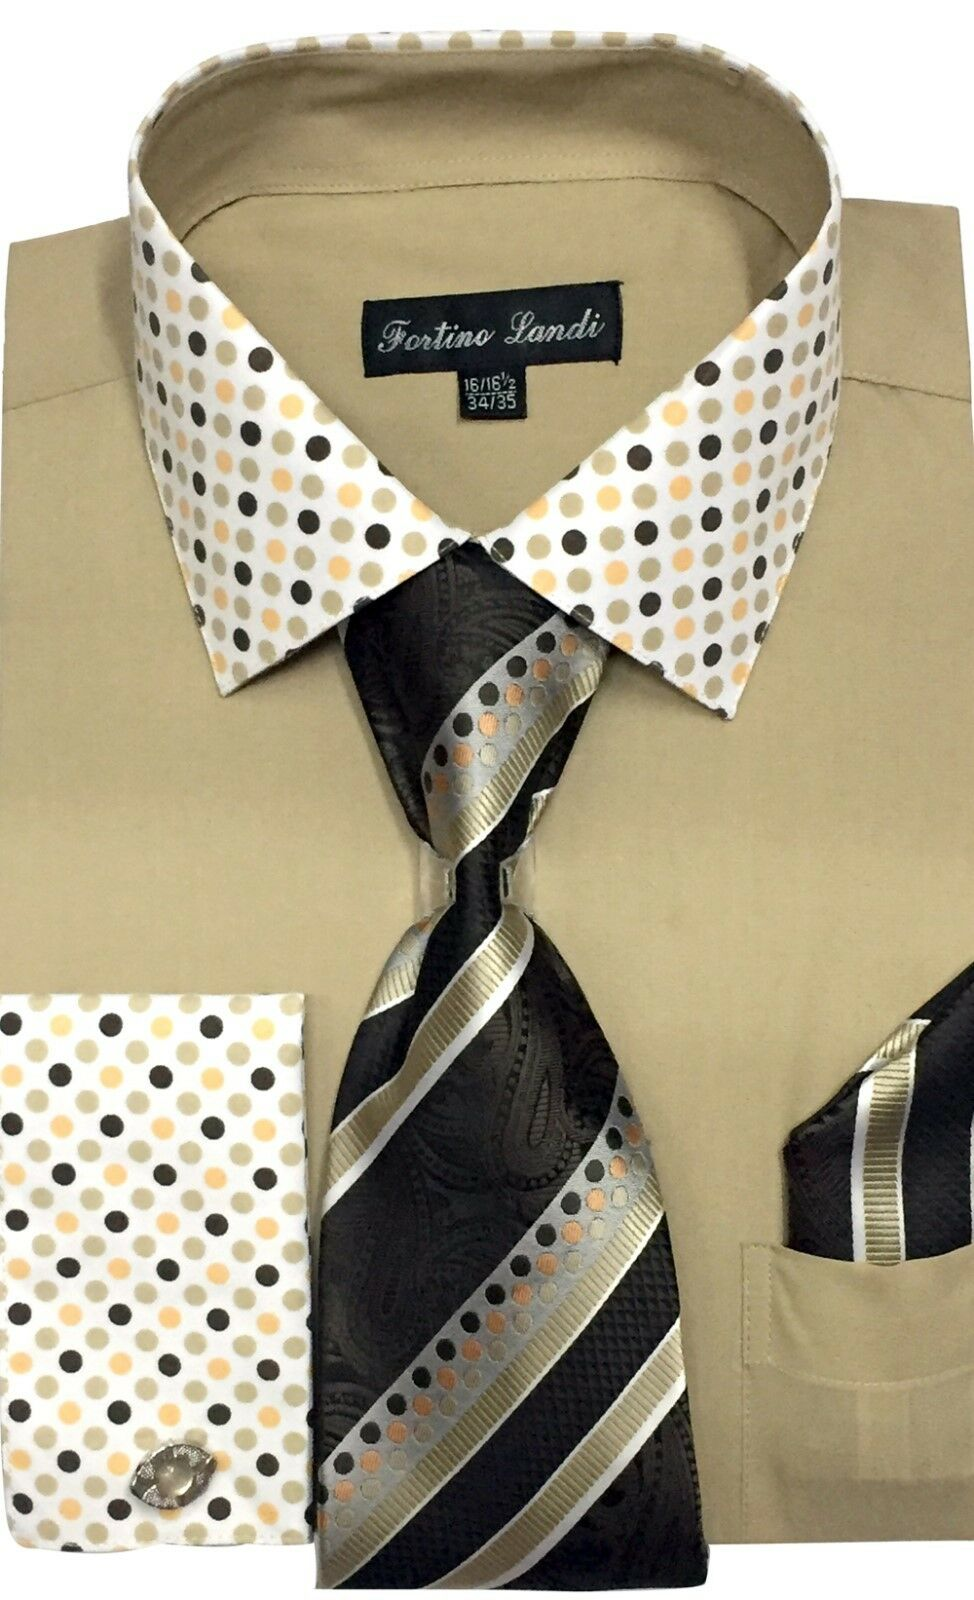 Fortino Landi Shirt FL630-Tan - Church Suits For Less